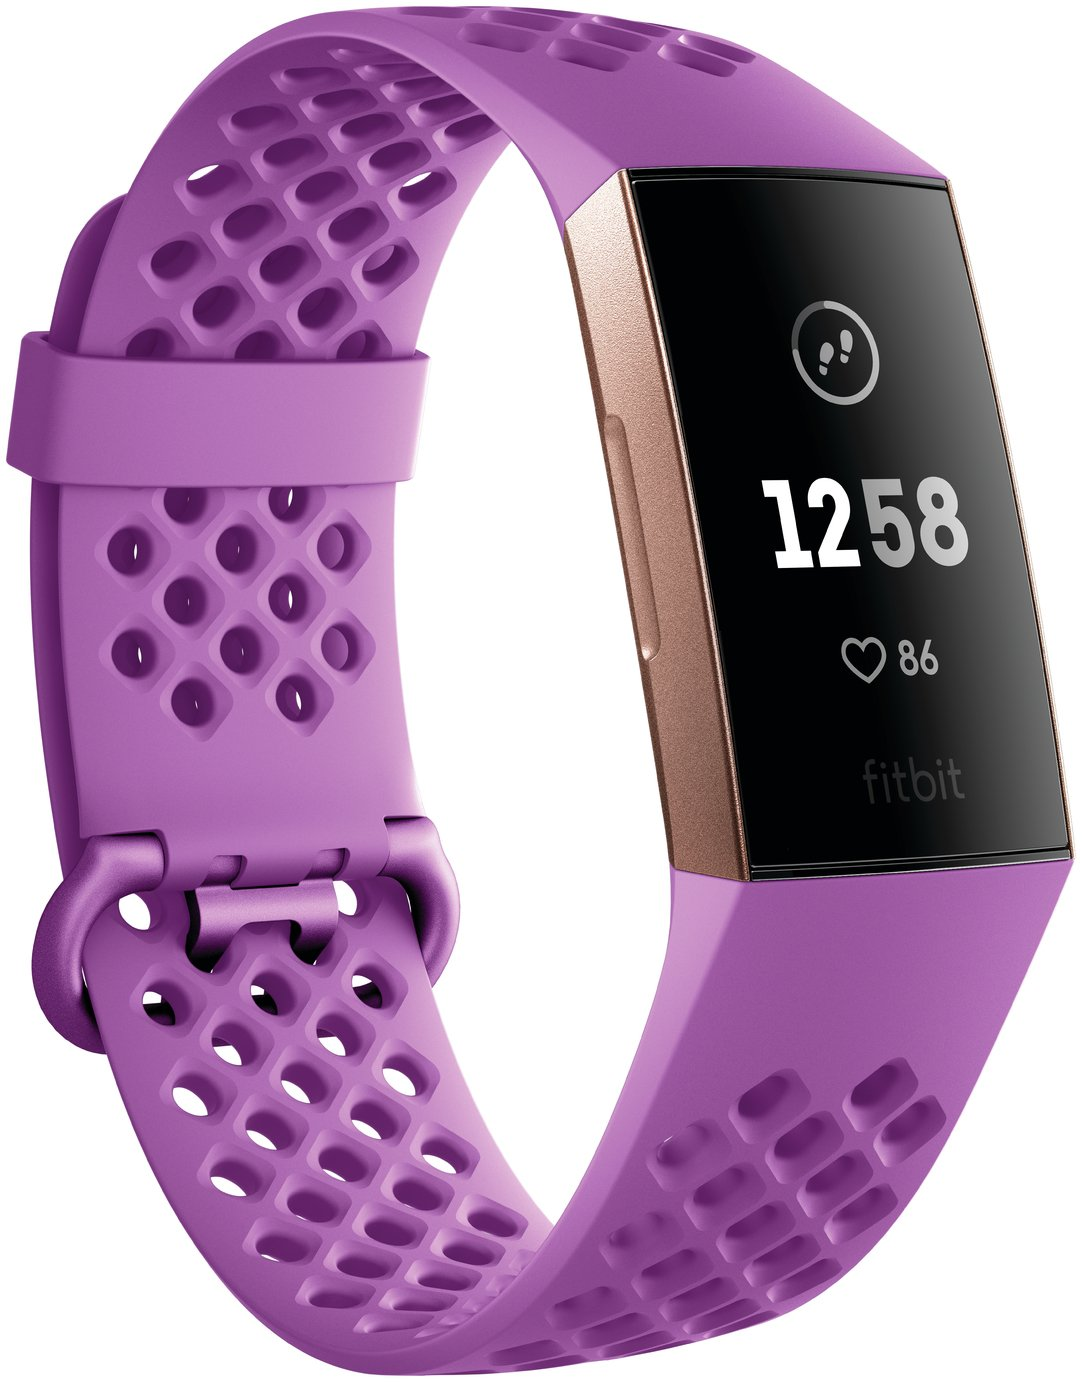 Fitbit Charge 3 Fitness Tracker - Berry from Fitbit